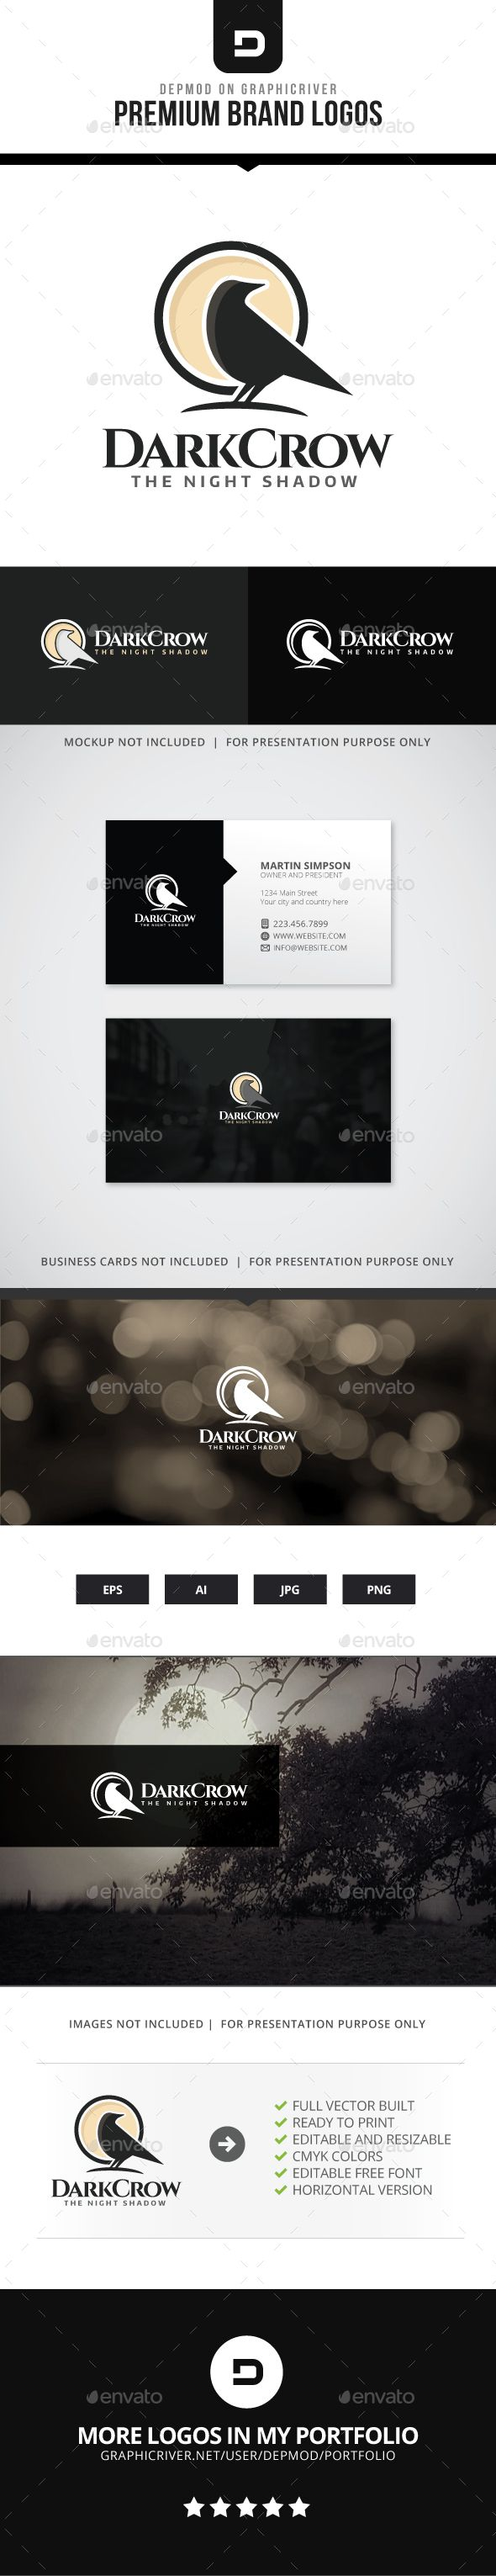 Dark Crow Logo — Transparent PNG #brand #animal • Available here → https://graphicriver.net/item/dark-crow-logo/15604199?ref=pxcr